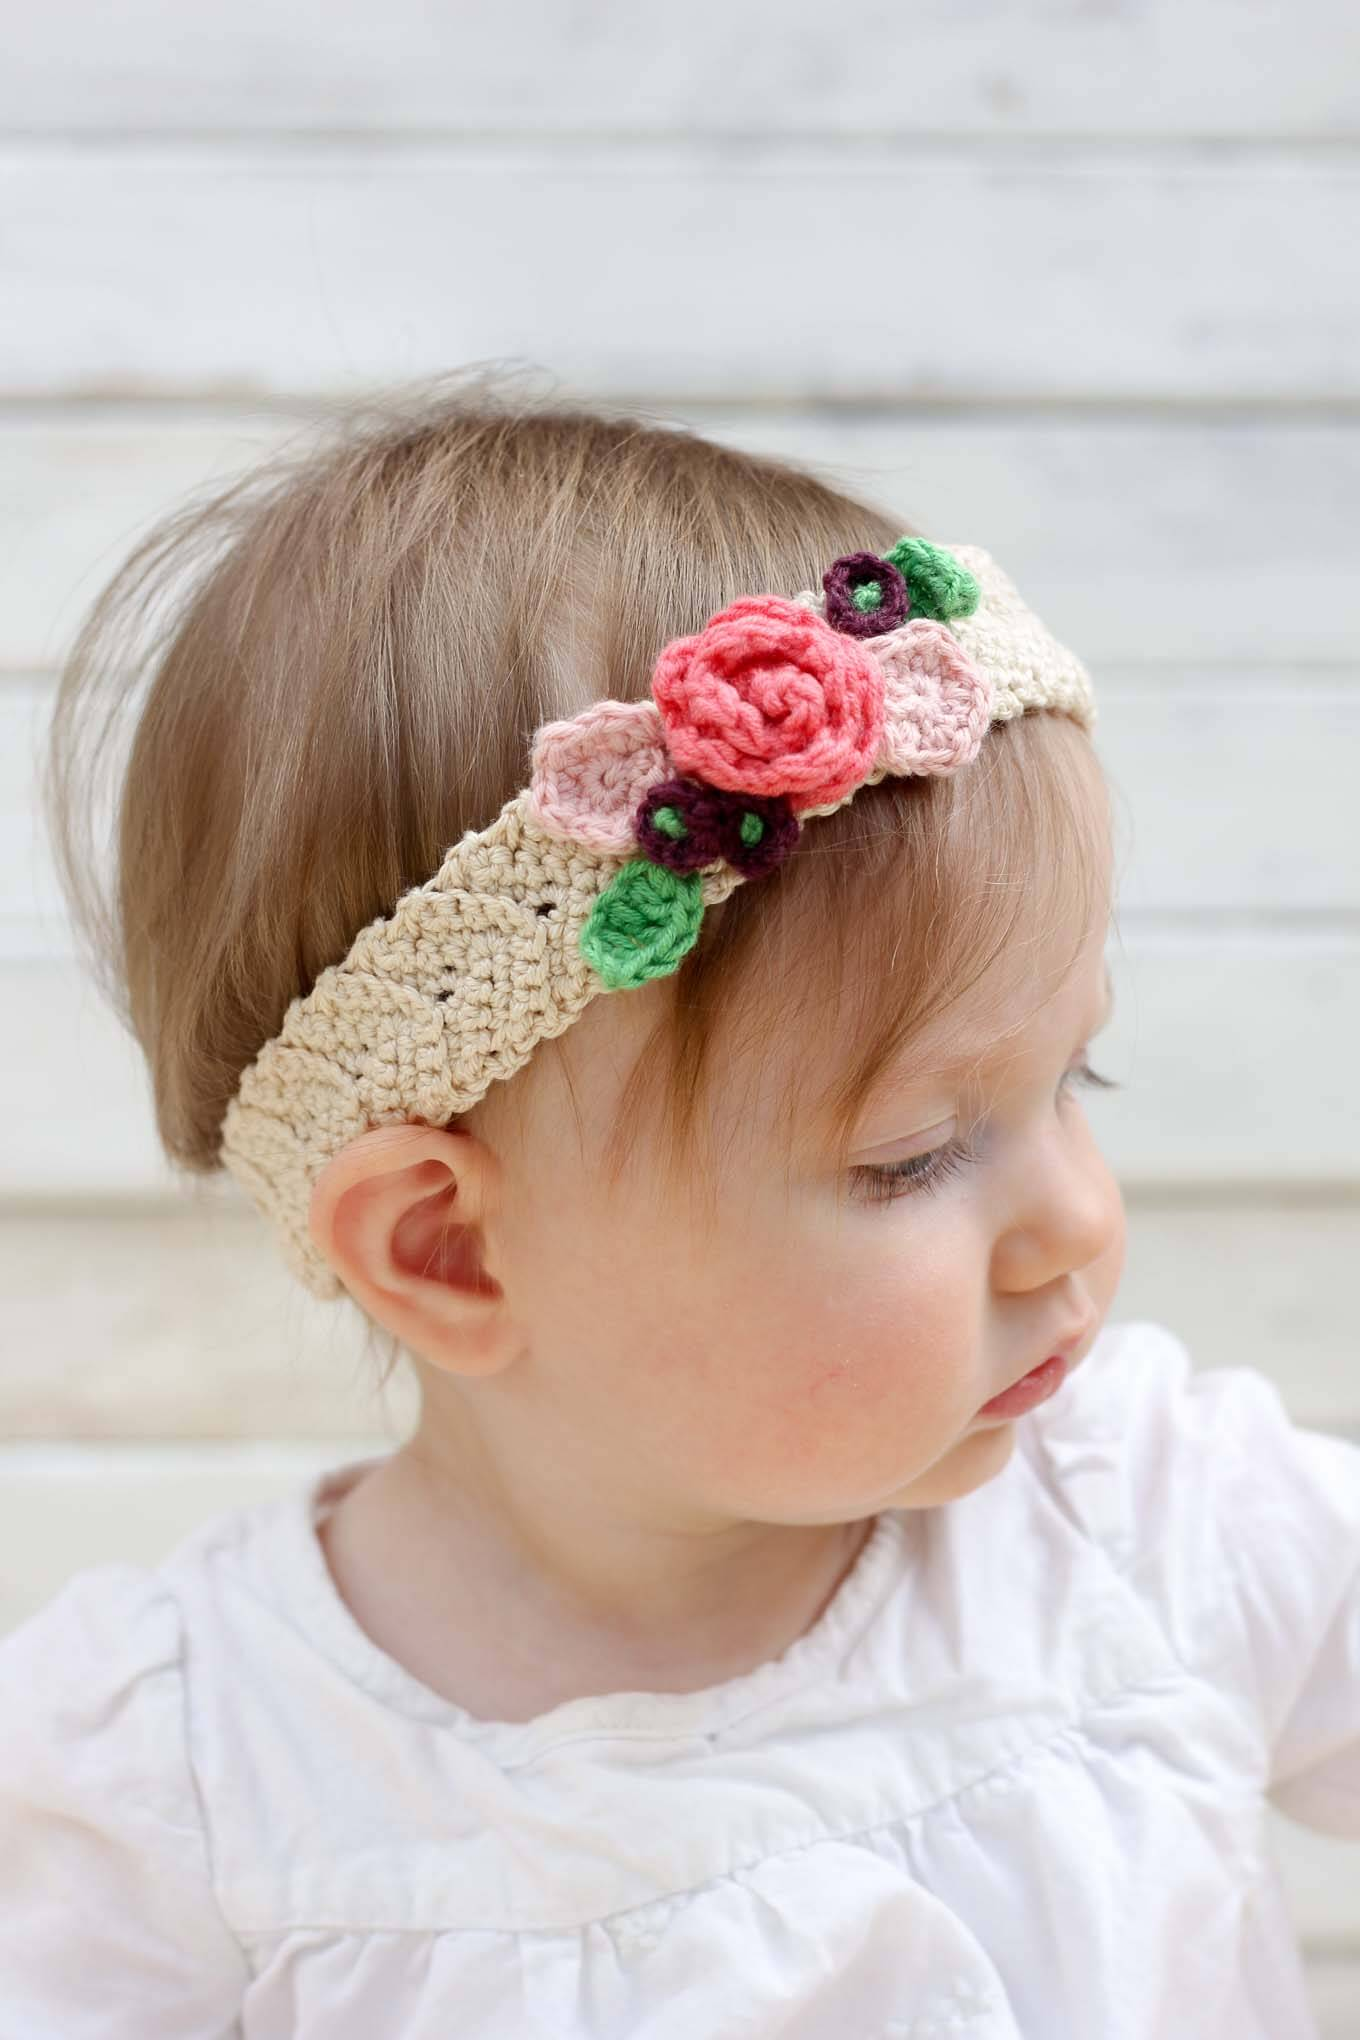 Free Adjustable Crochet Headband Pattern : Baby Headband With Flowers Free Crochet Pattern # 2016 ...